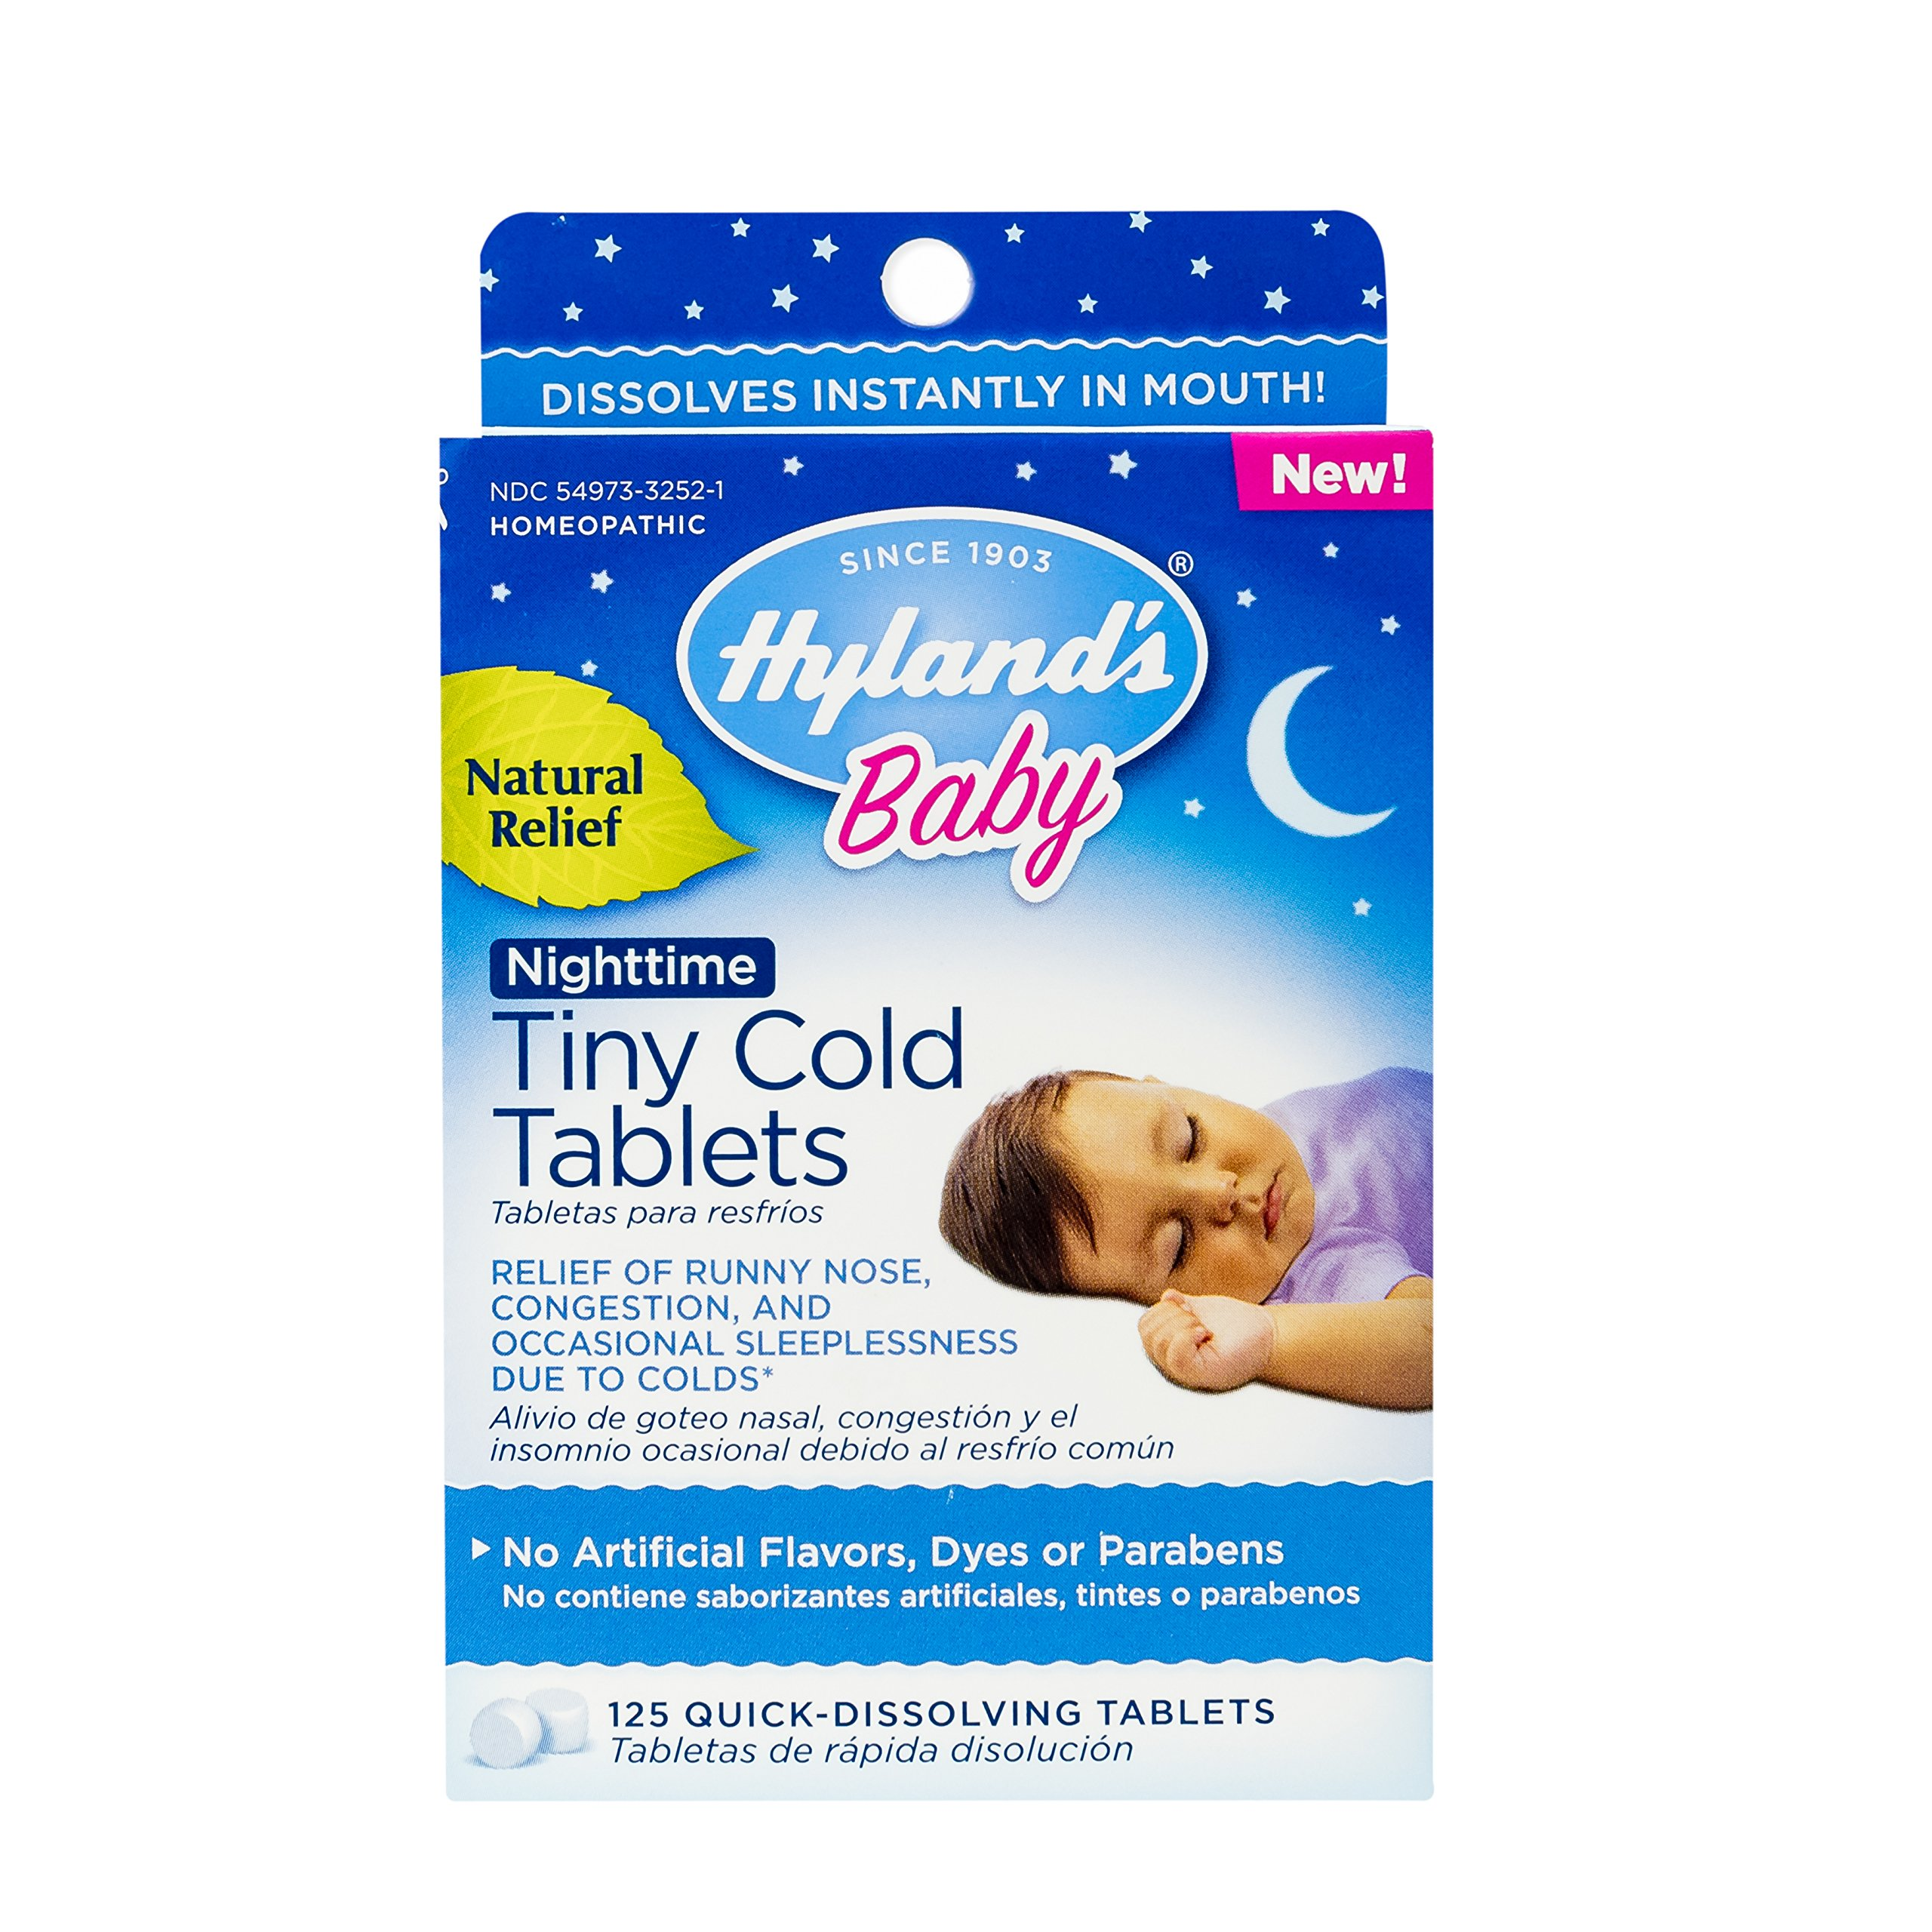 Hyland's Baby Night time Tiny Cold Tablets